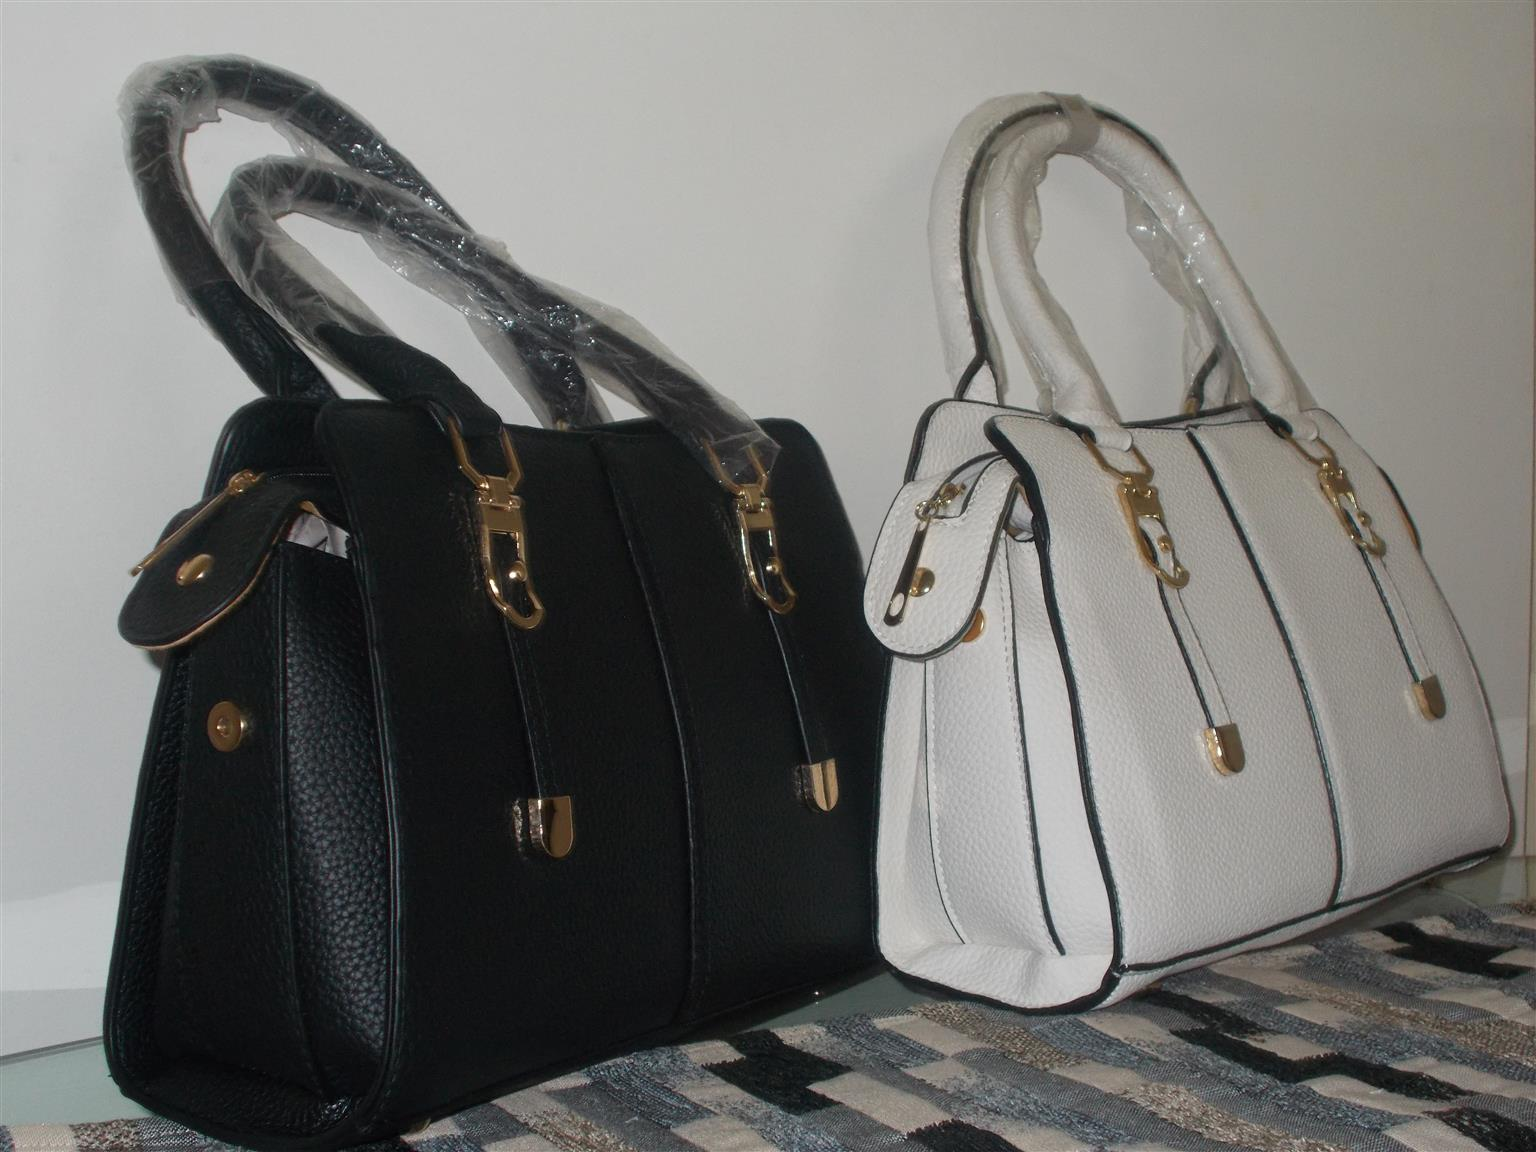 AFFORDABLE BEAUTIFUL LADIES IMPORTED HANDBAGS!!! LIMITED STOCK d099f15a9